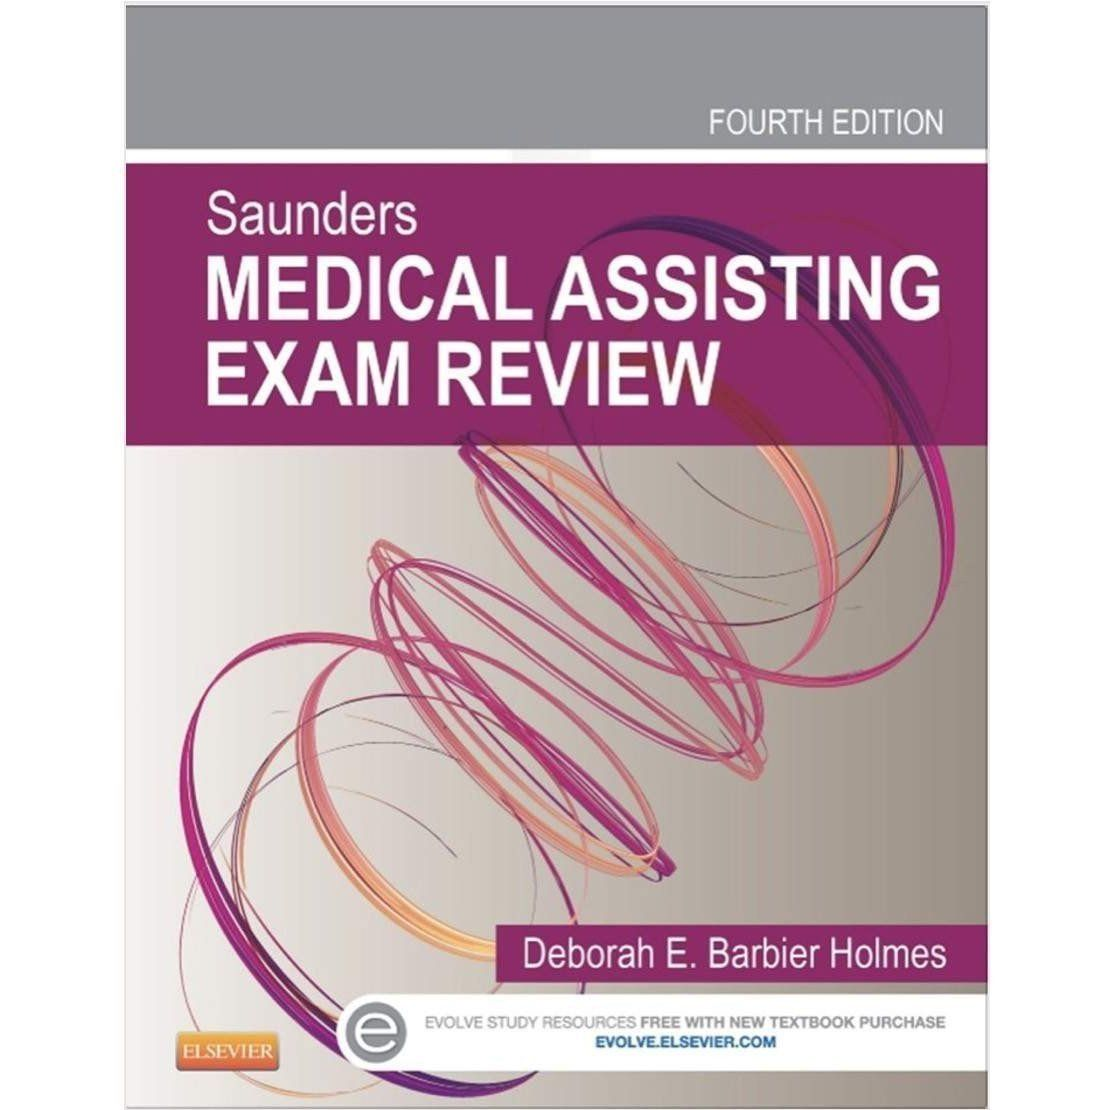 Saunders Medical Assisting Exam Review 4th Edition PDF - $19.99 ...